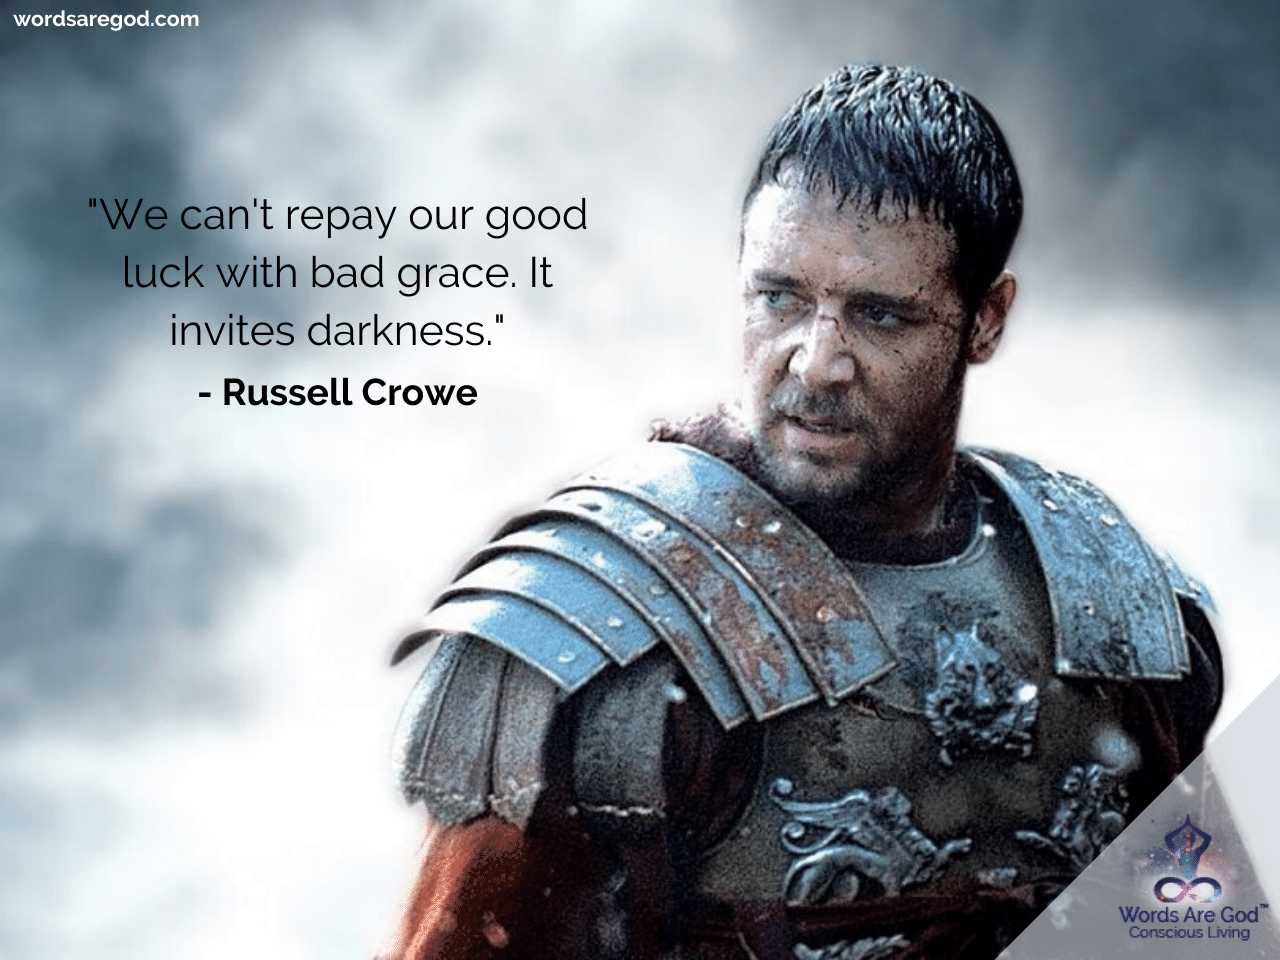 Russell Crowe Inspirational Quotes